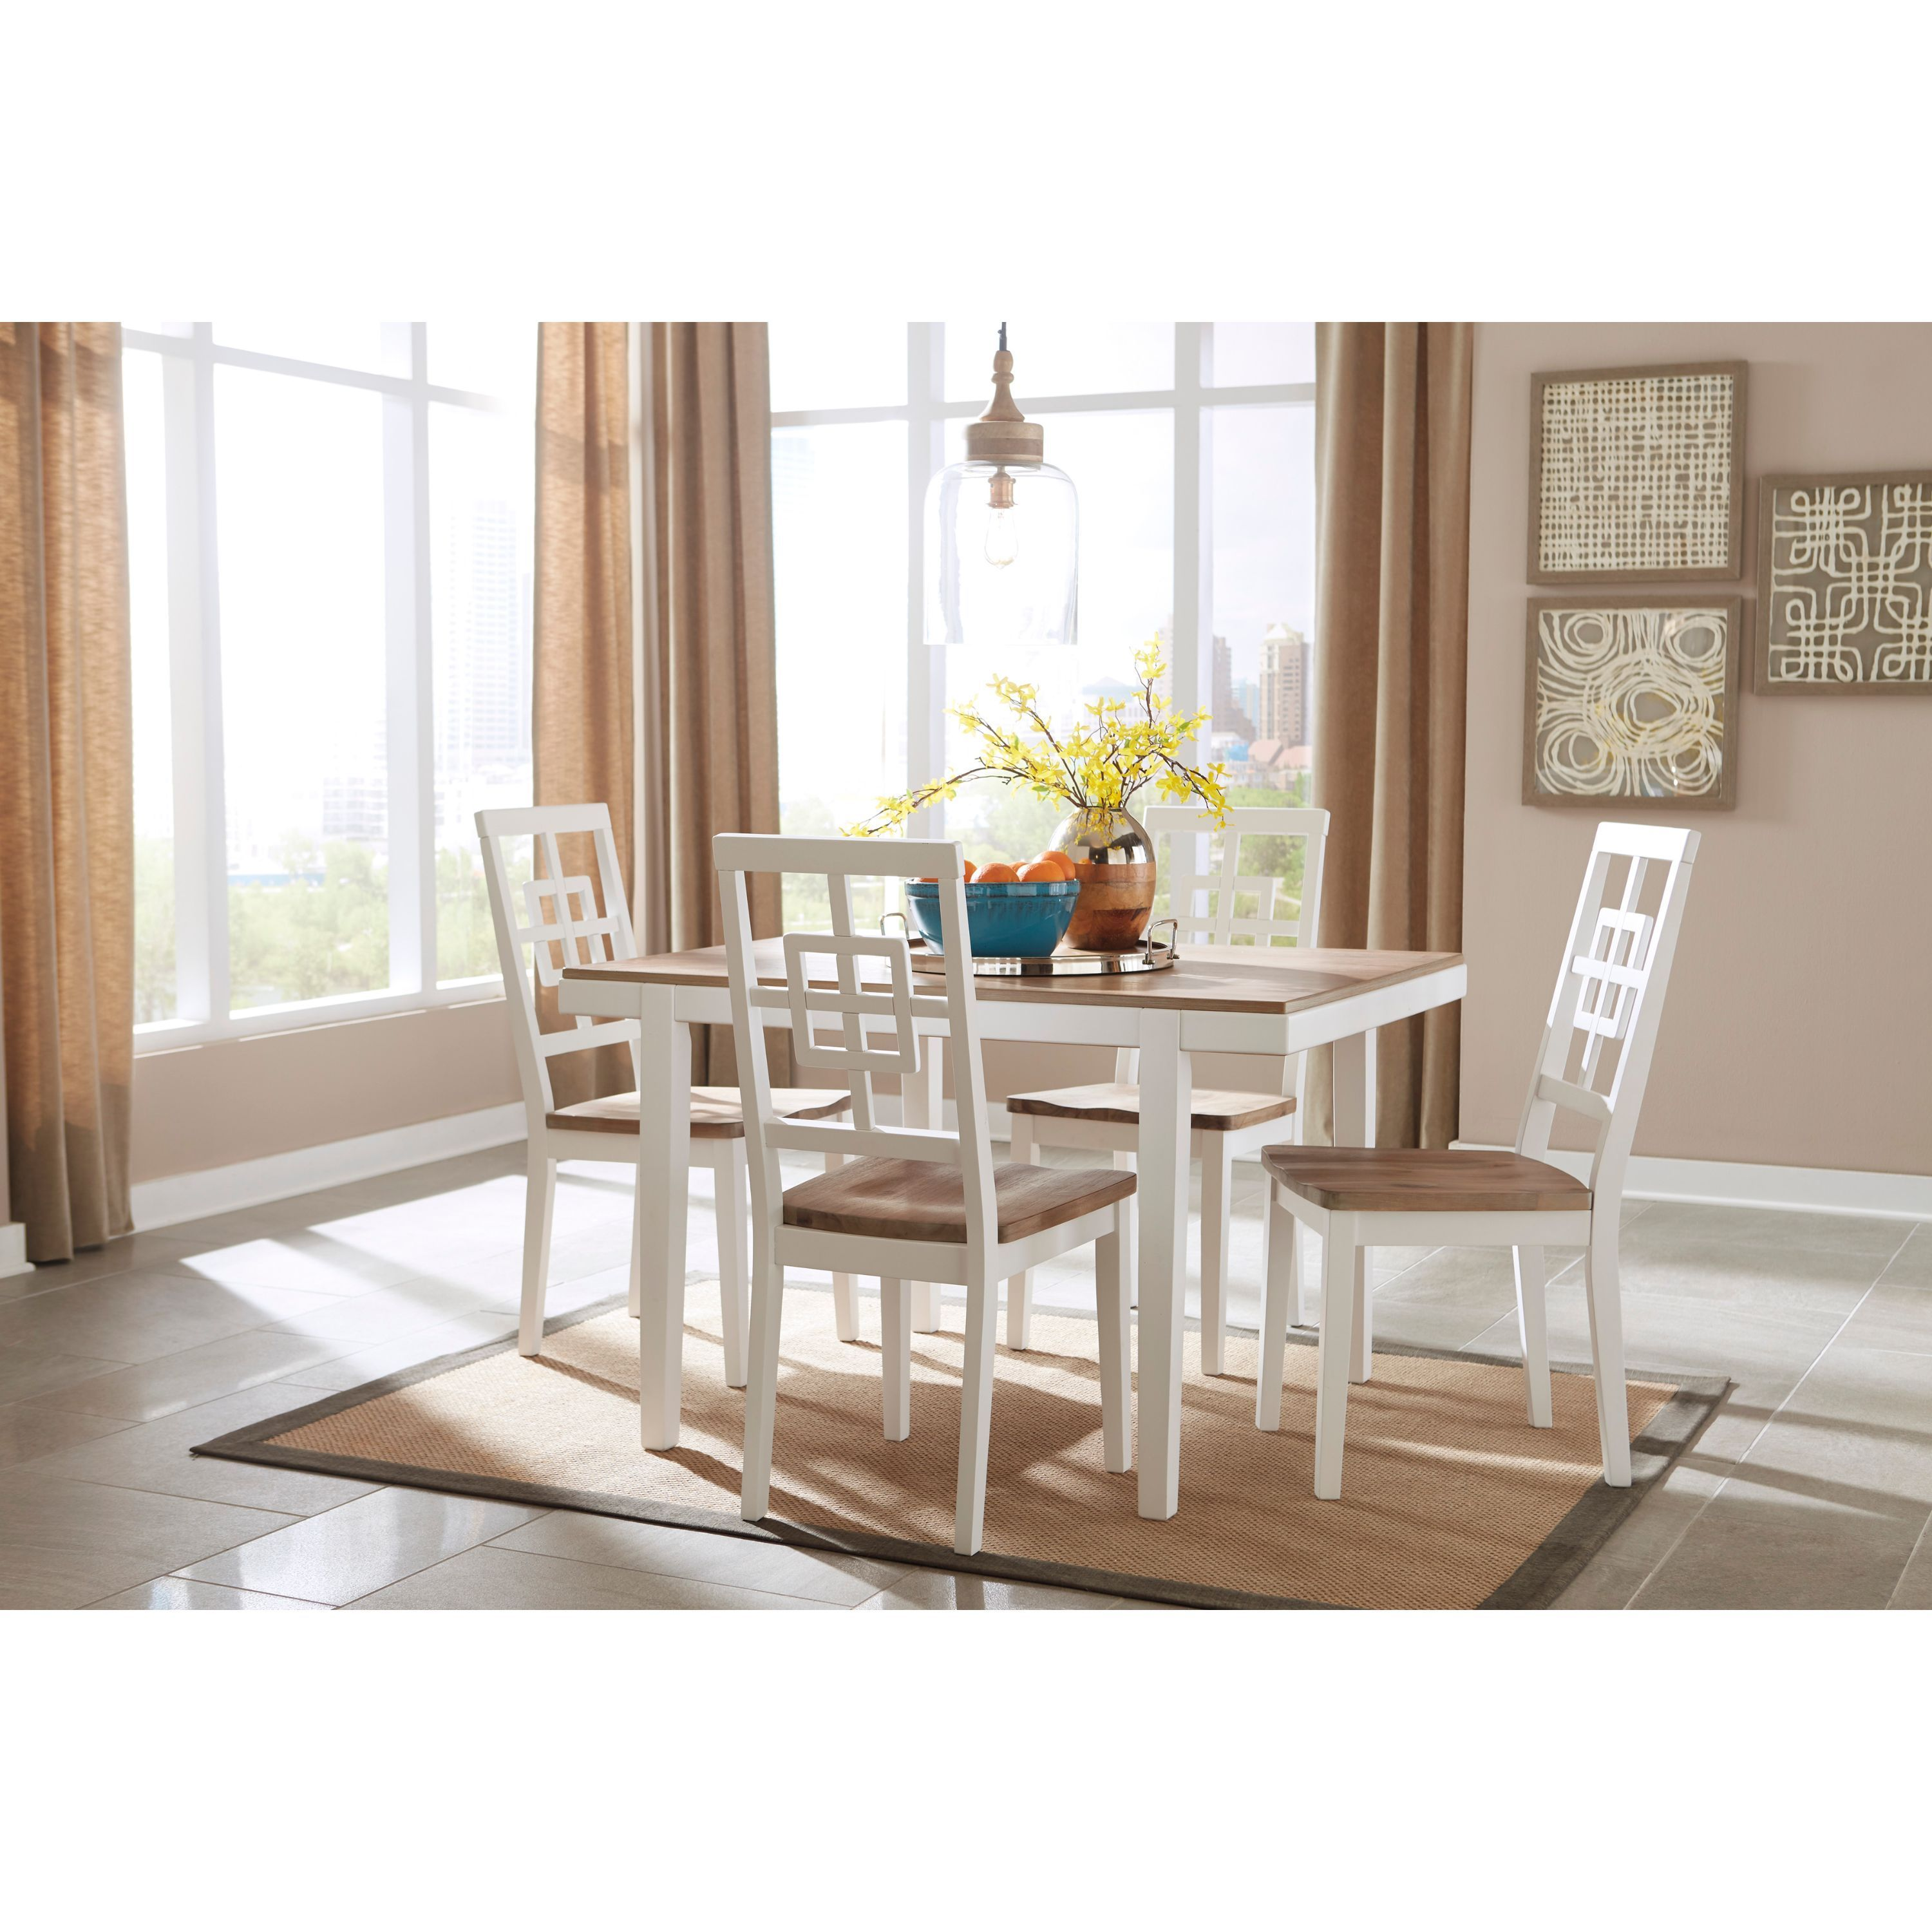 Shop Brovada Two Tone 5 Piece Dining Room Set   Free Shipping Today    Overstock.com   12089989